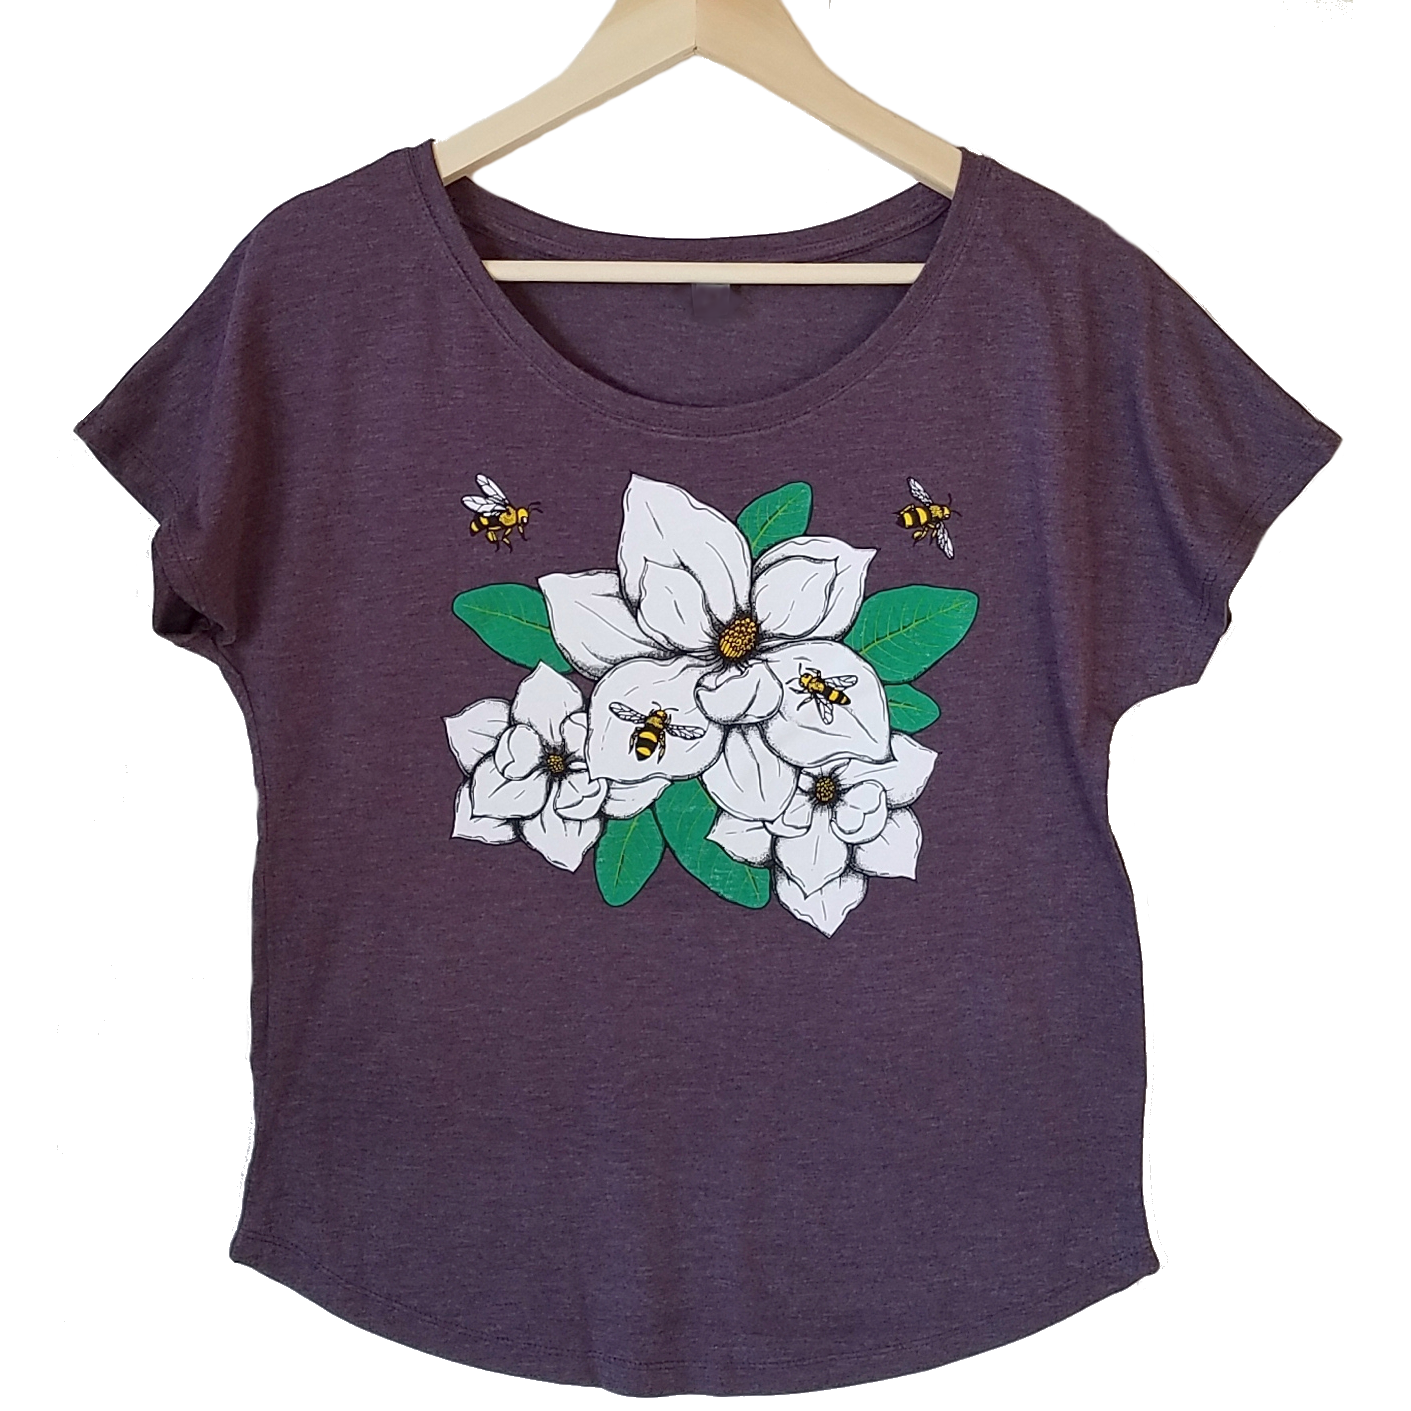 Magnolia & Honey Bees Women's T-shirt. We've created a beautiful new design that captures southern style, charm and our love of bees. Magnolias are one of our favorites and this design is so realistic, you can almost smell the sweetness.  Buttery soft triblend material in vintage black, flowers and bees in multiple colors. True to size dolman, preshrunk.  FREE package of wildflower seeds with your order.